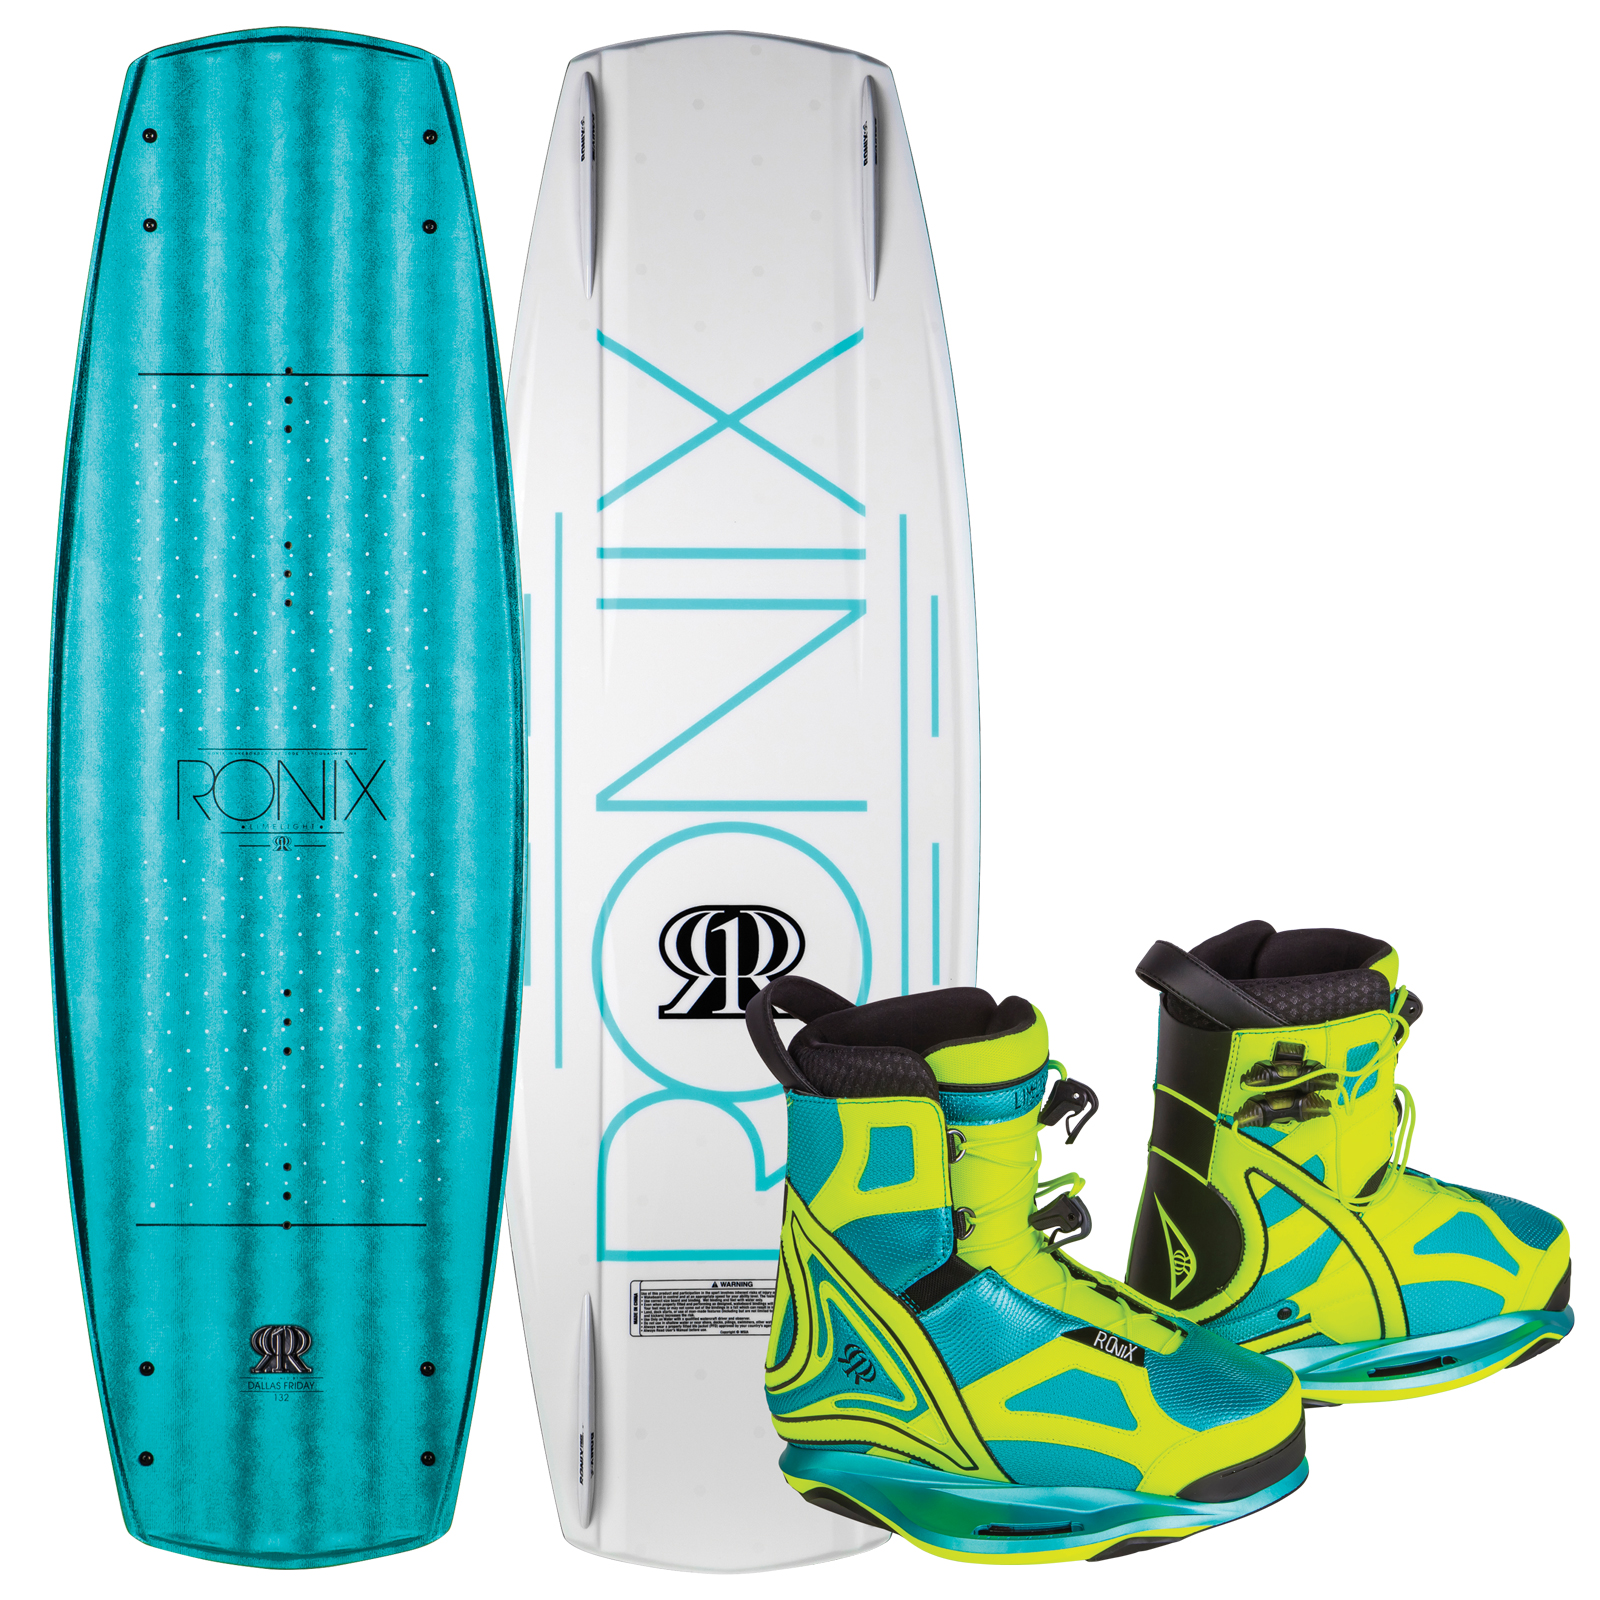 LIMELIGHT 136 W/ LIMELIGHT PACKAGE RONIX 2017